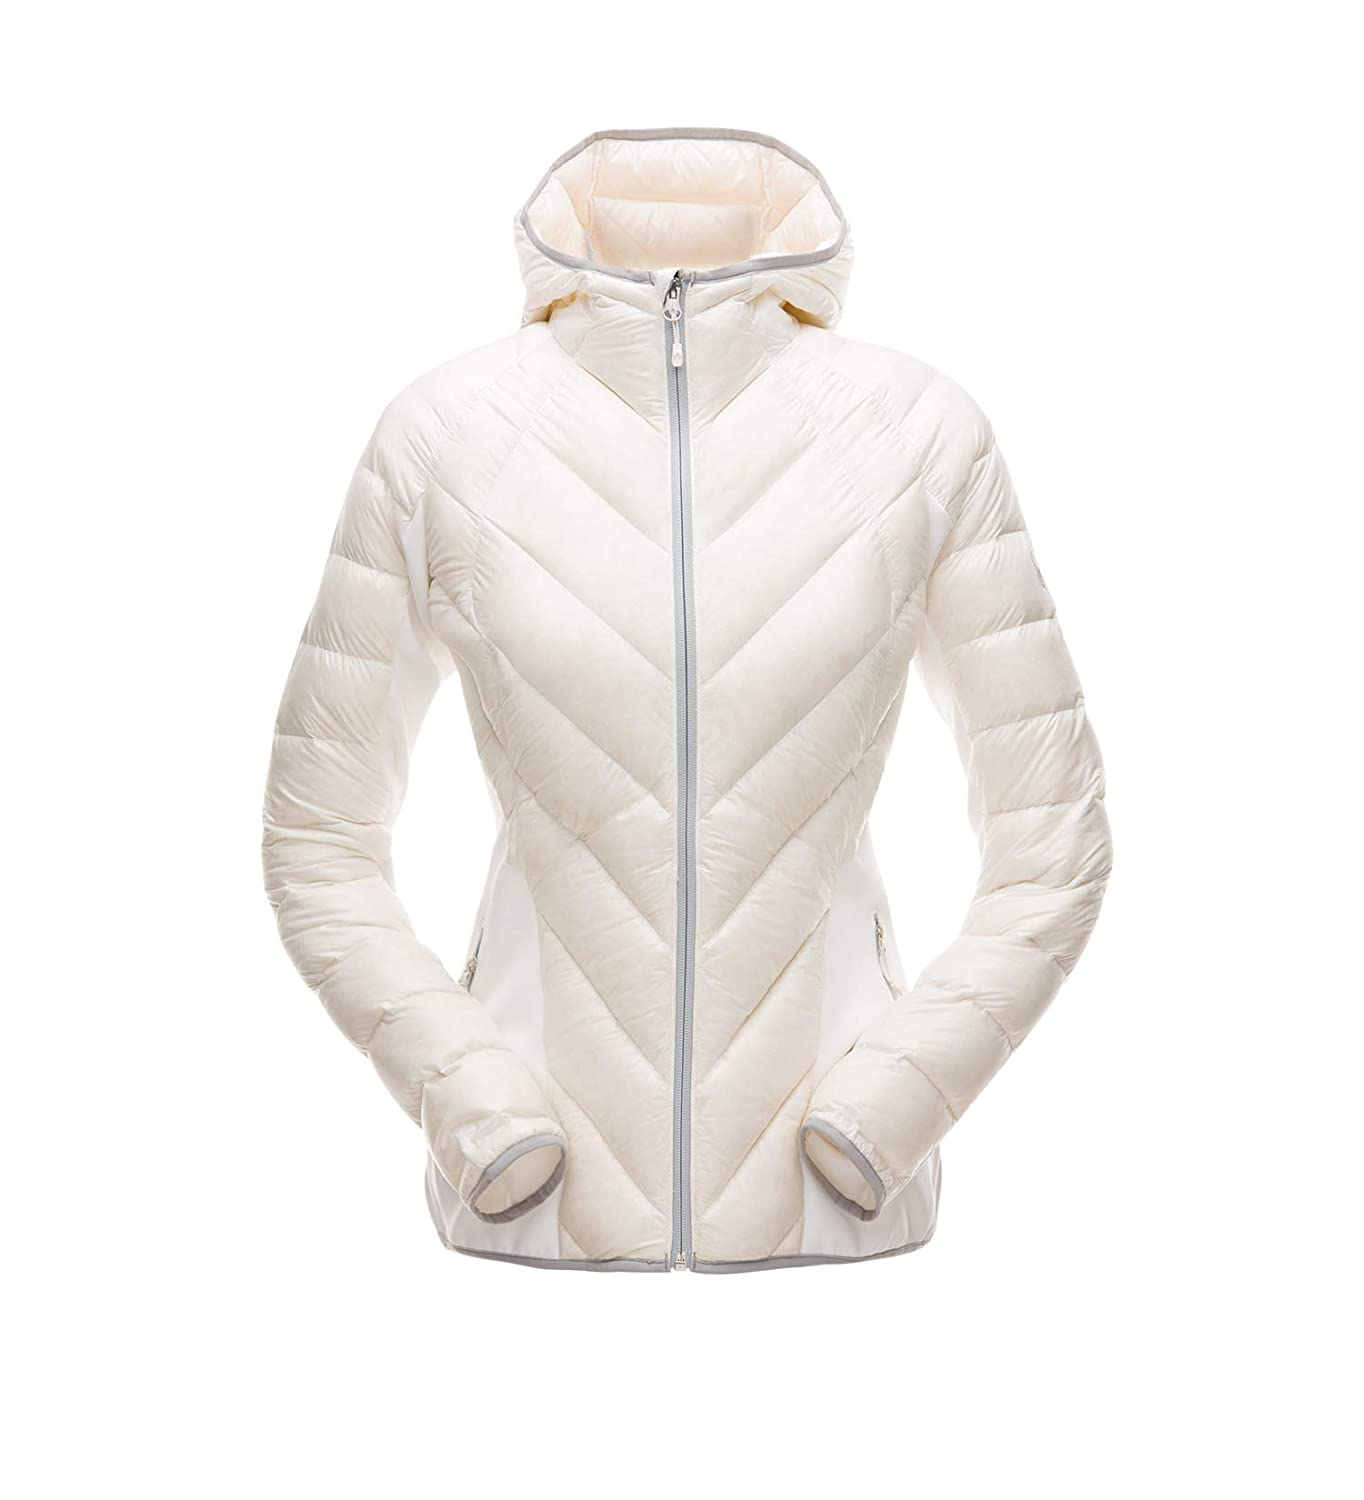 White White Alloy L Spyder Women's Syrround Down Hybrid Hoody Jacket Down-Outerwear-Coats